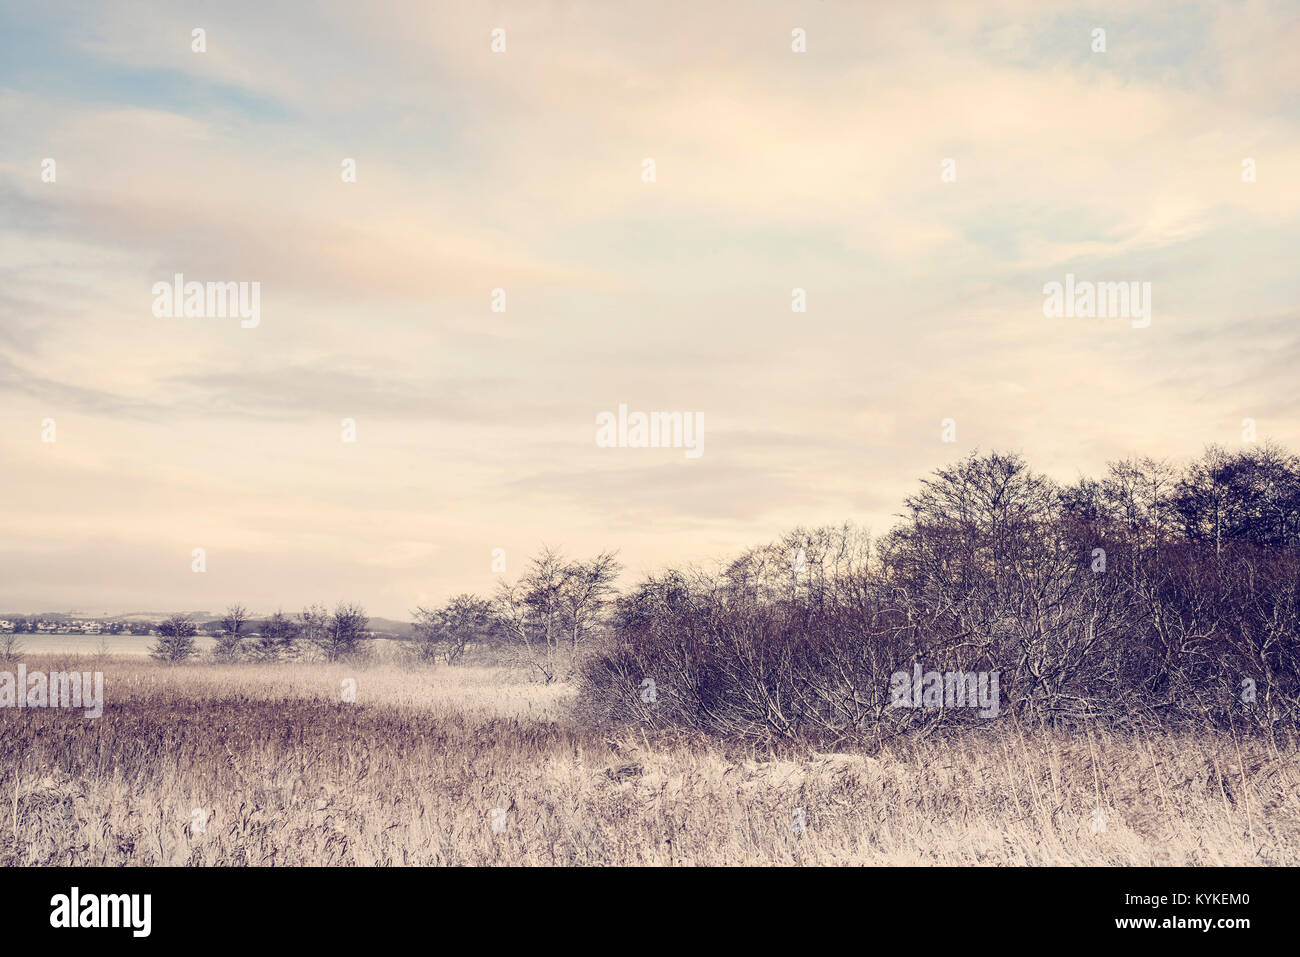 Idyllic winter landscape with frosty trees in the wilderness looking beutiful in the morning sunrise - Stock Image